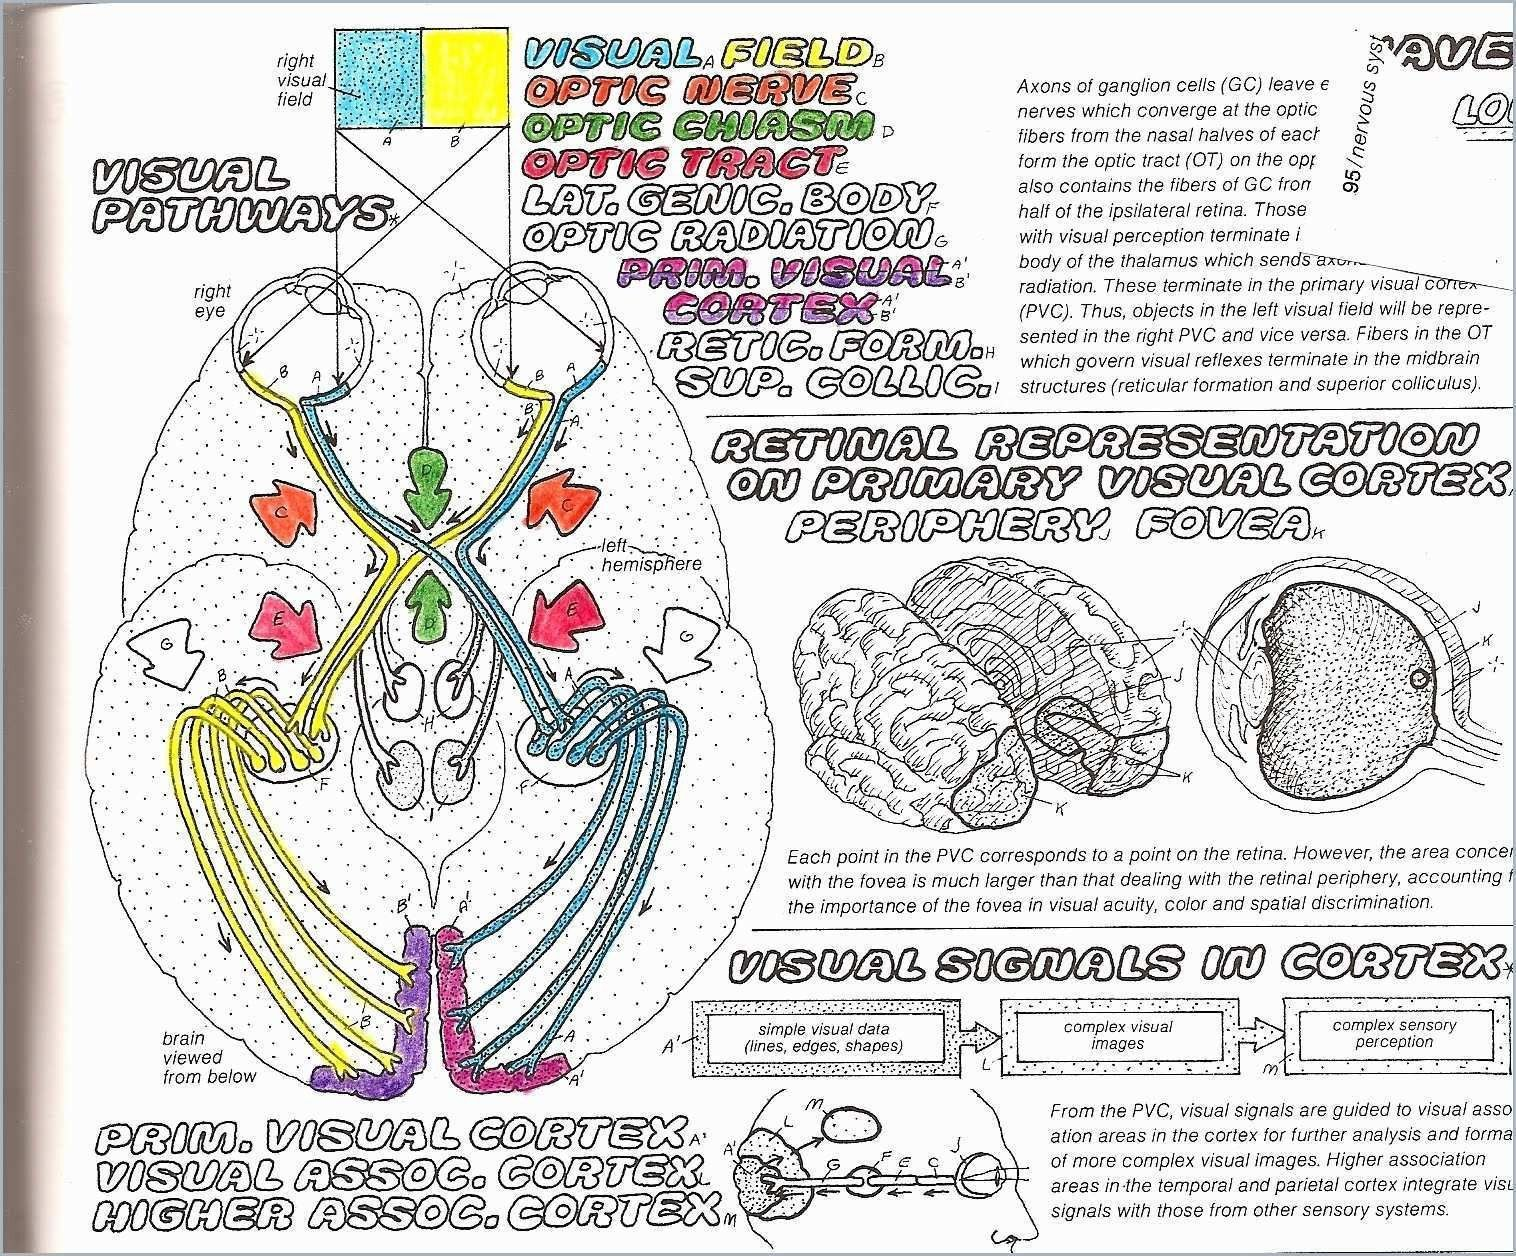 Anatomy Coloring Book Pdf Beautiful Greys Anatomy Coloring Pages Best Veterinary Cat Canine Pdf Anatomy Coloring Book Cool Coloring Pages Anatomy